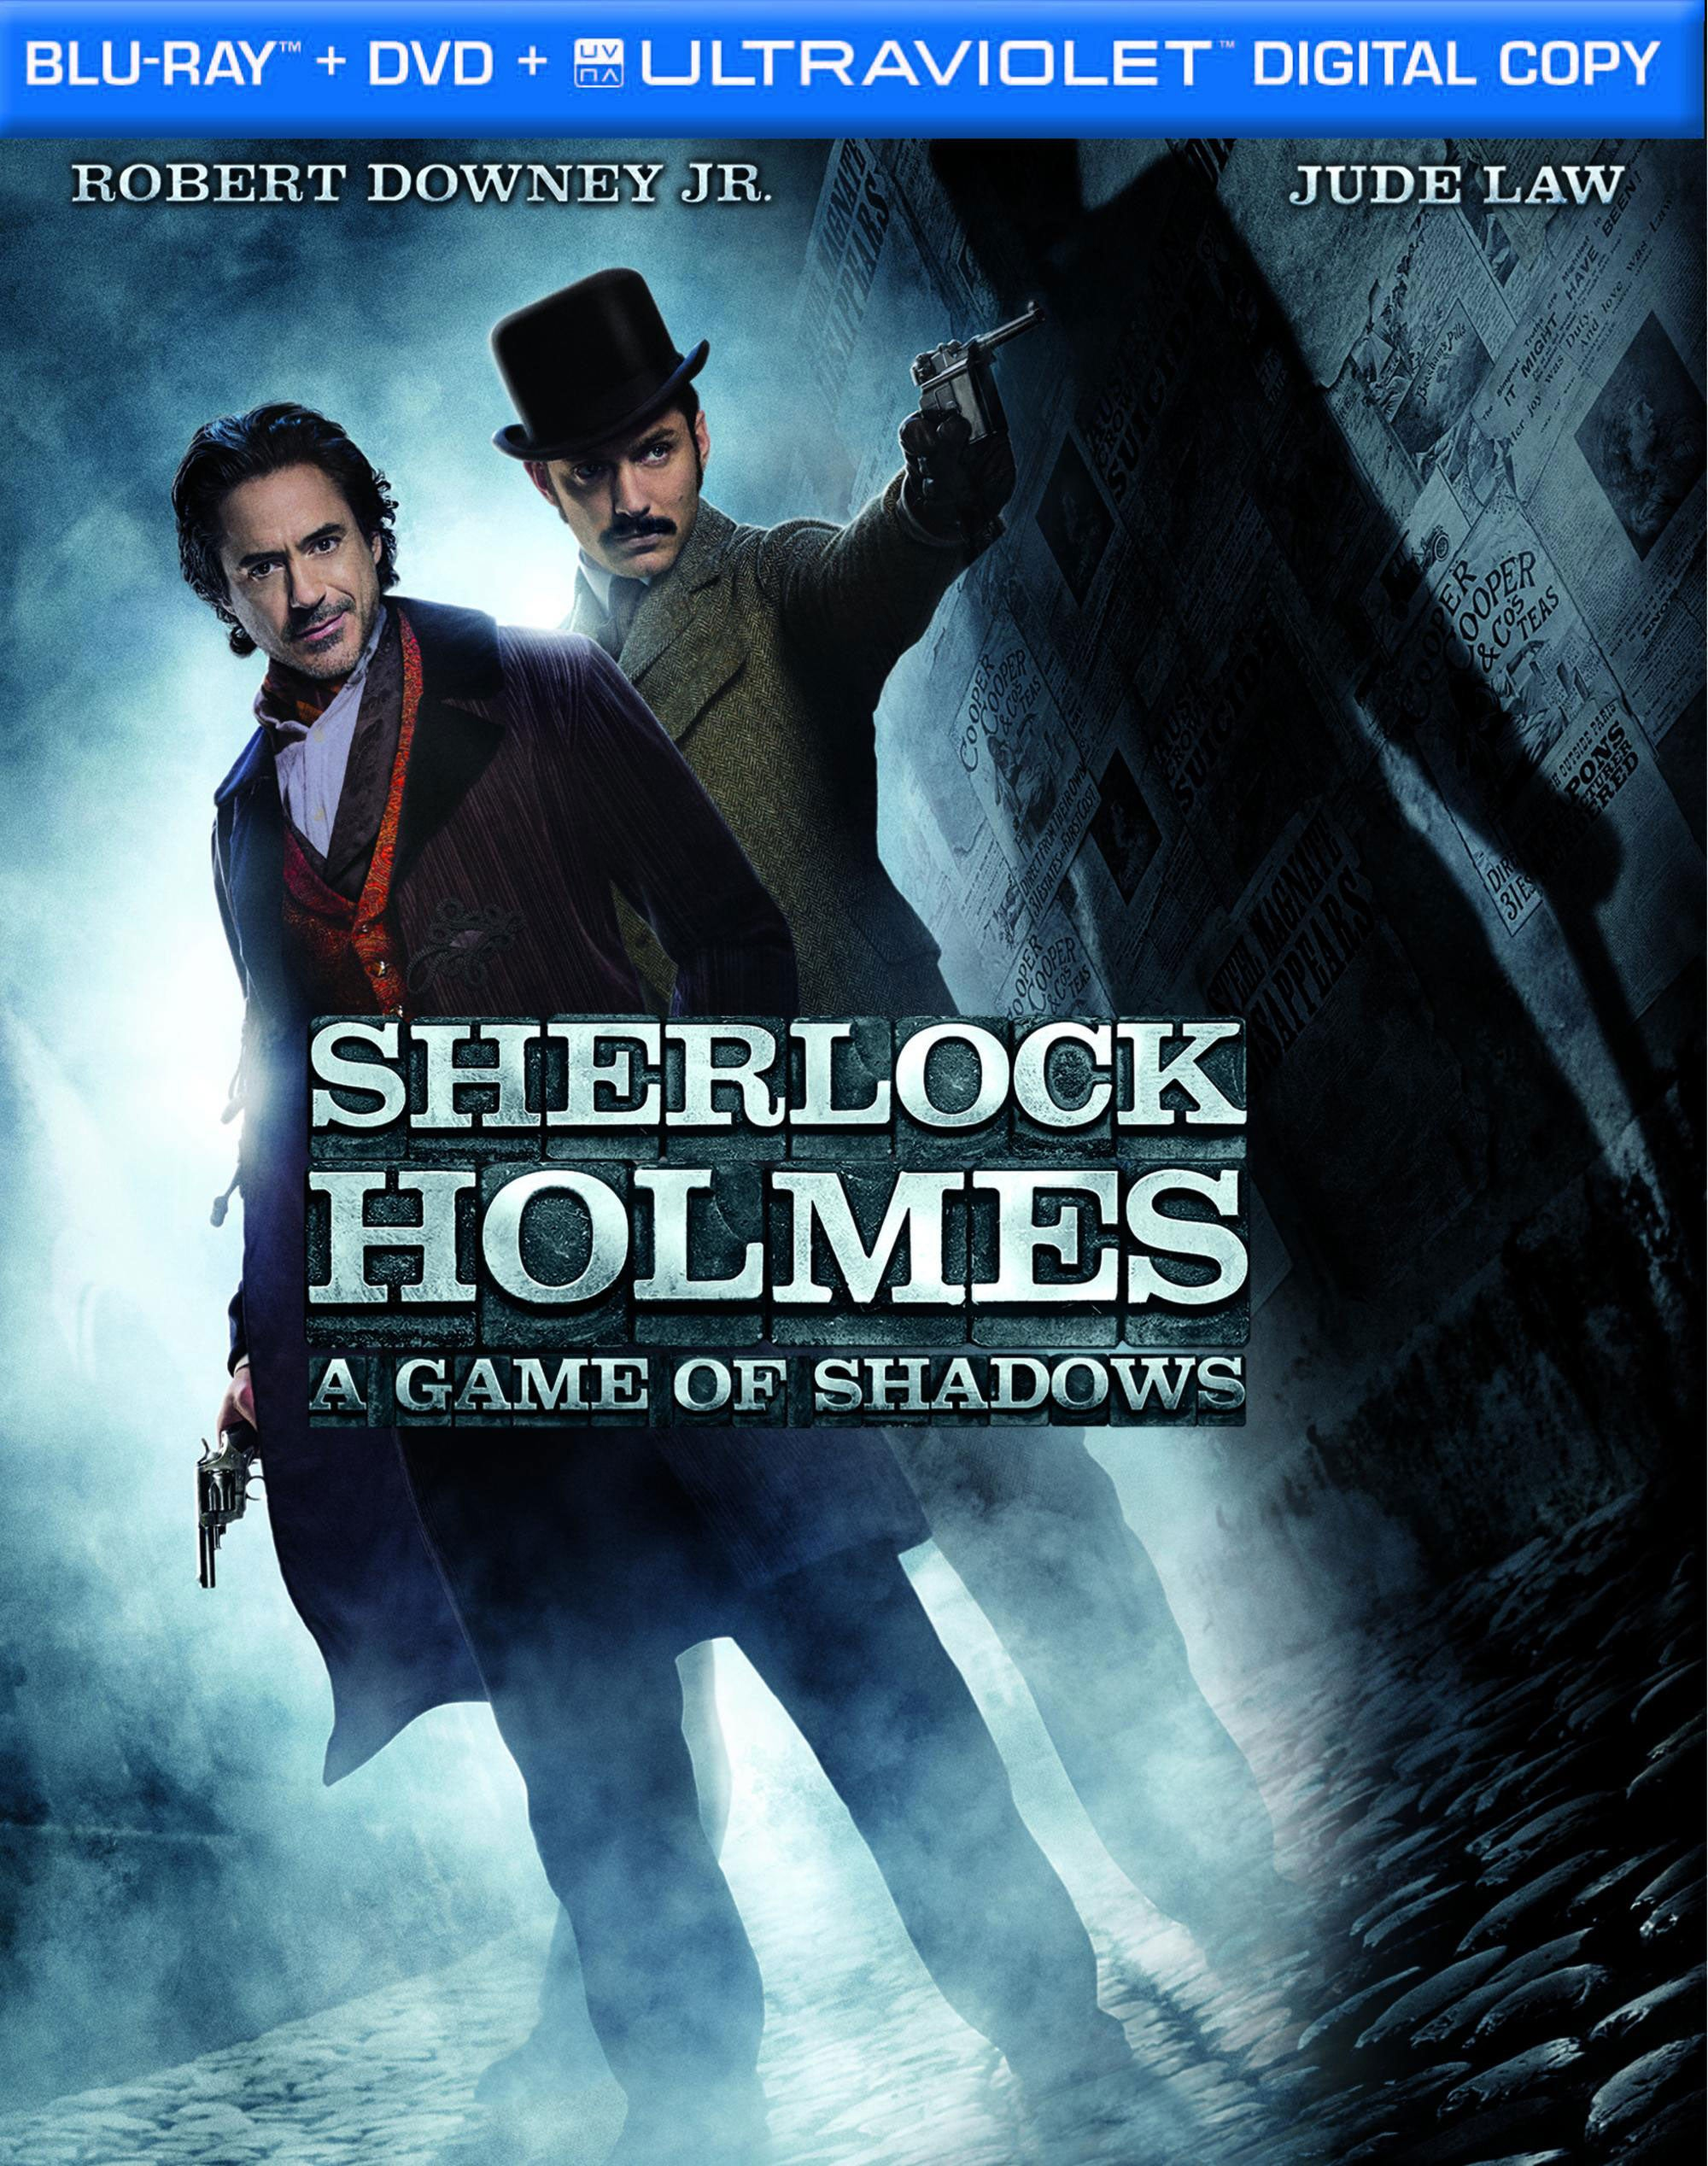 Sherlock Holmes: A Game of Shadows (Blu-ray/DVD)